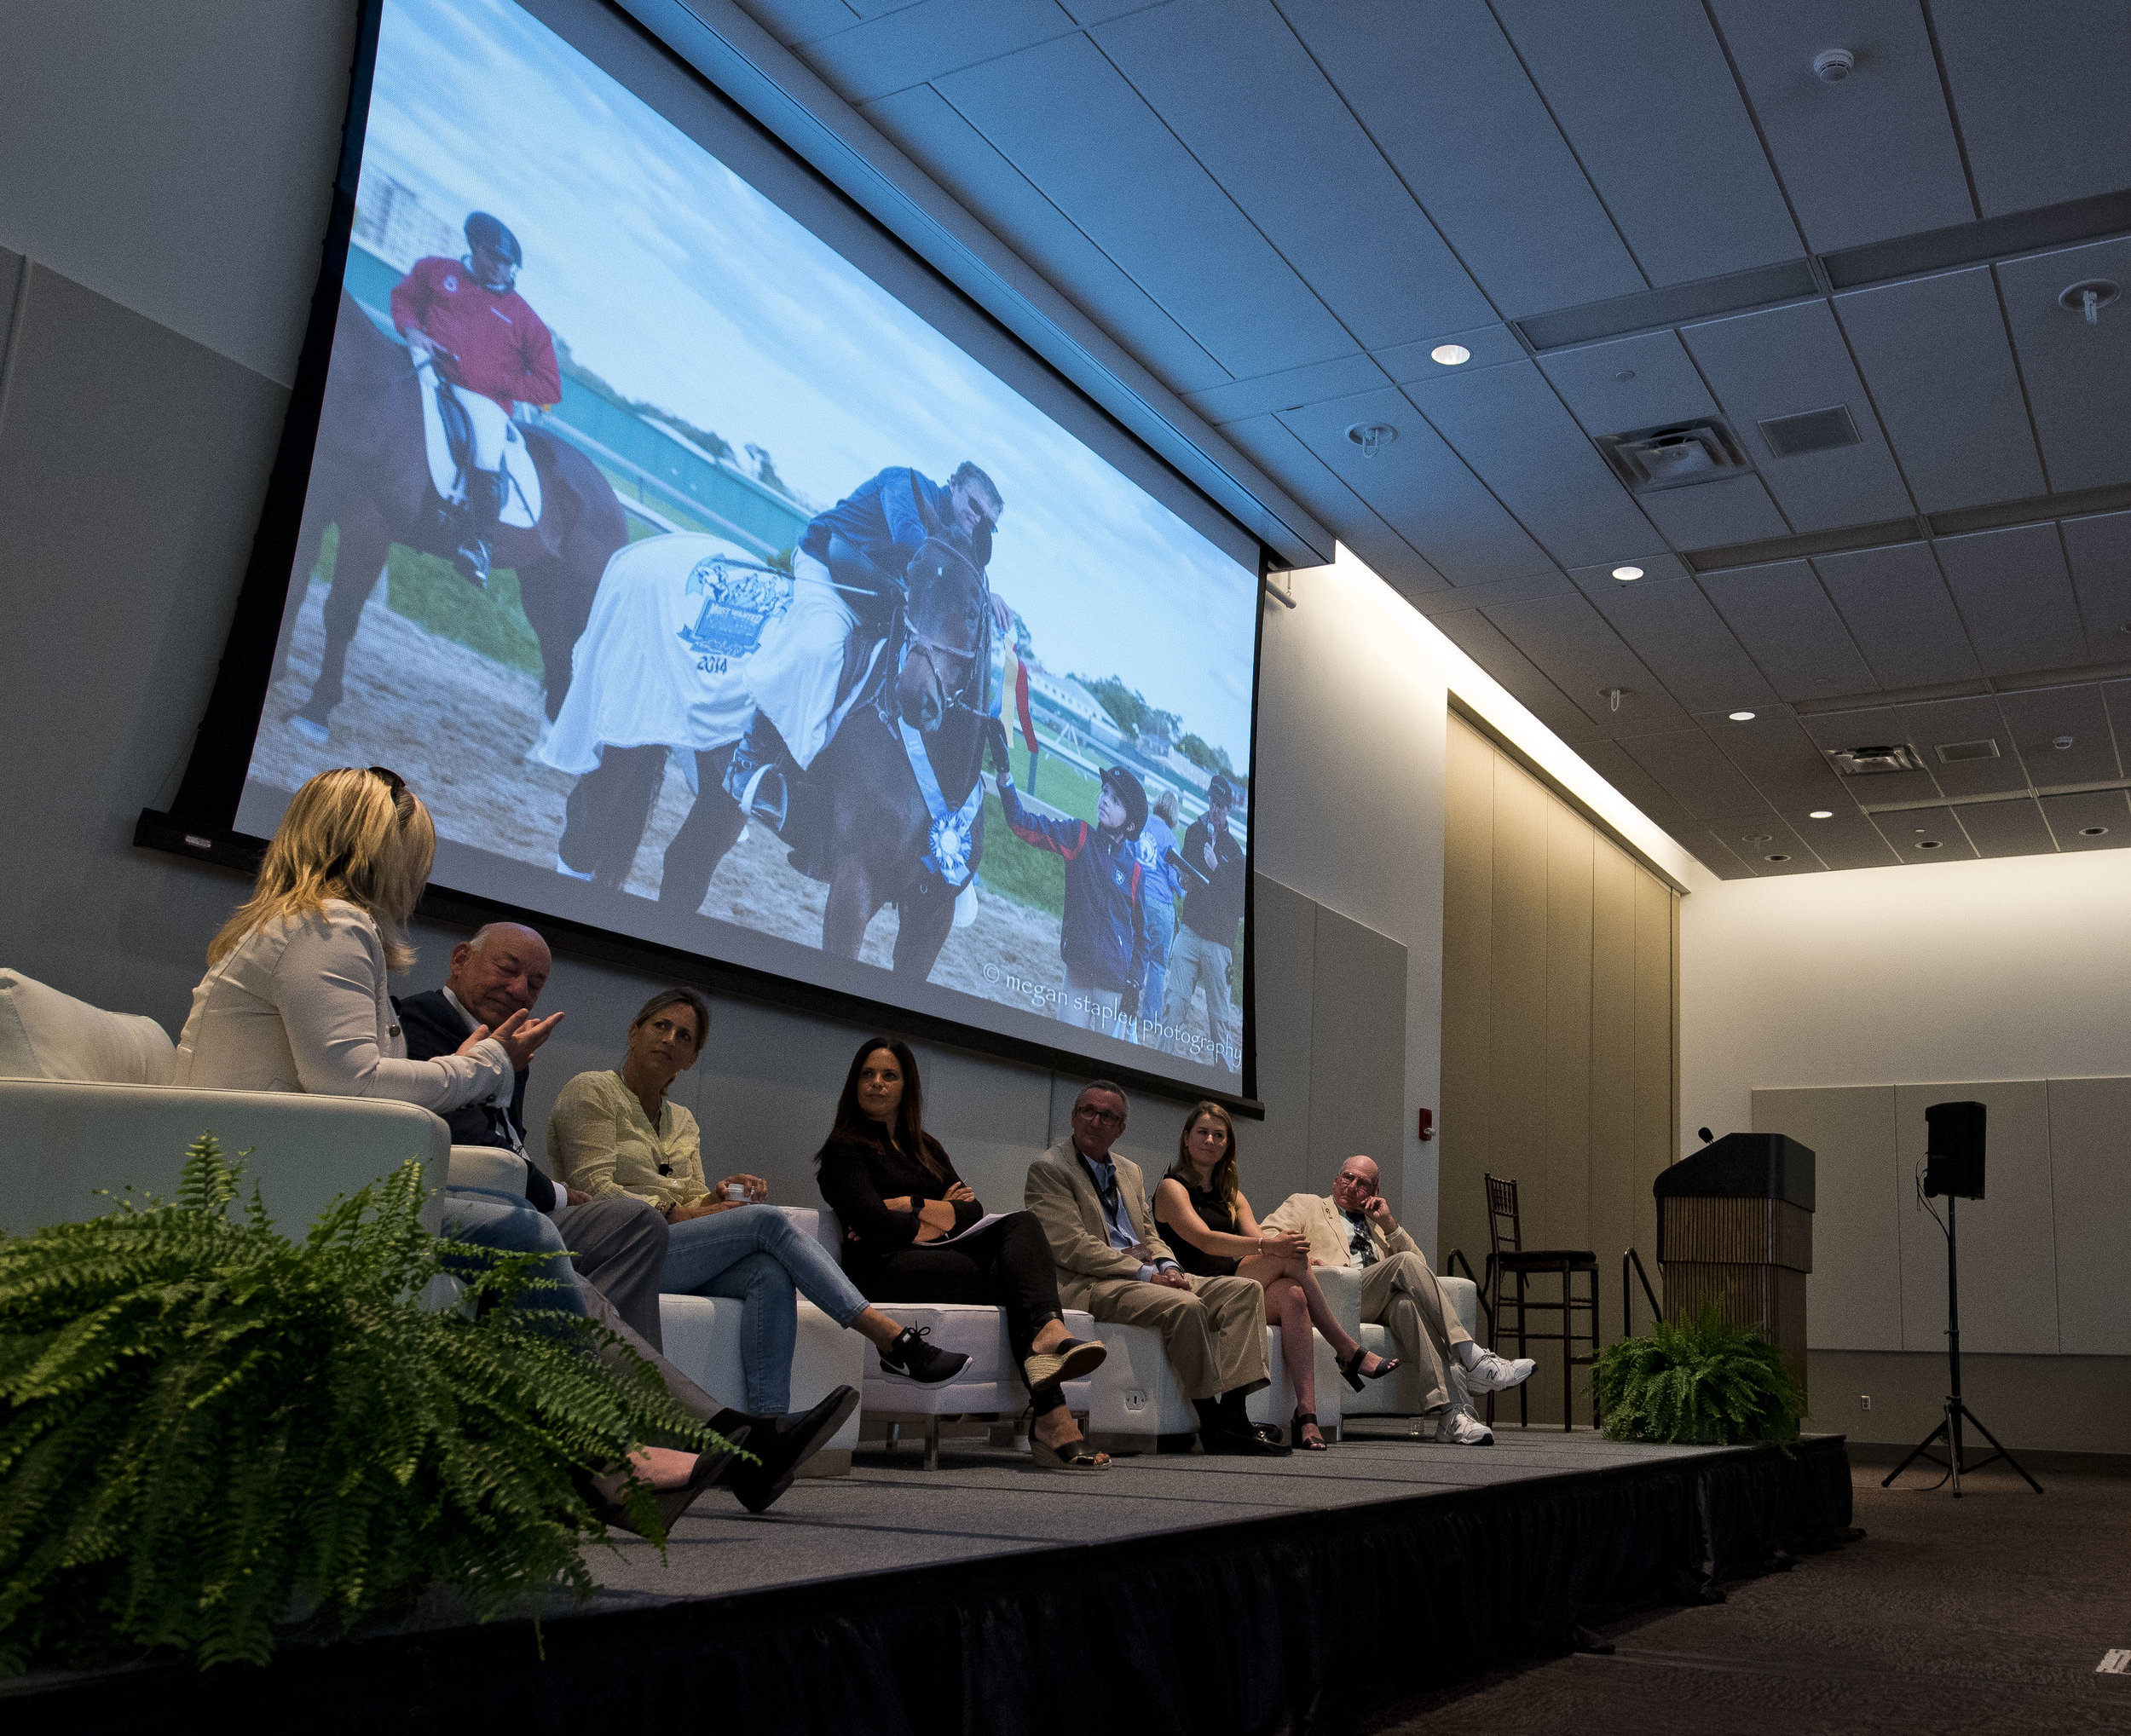 """Panelists discuss some of their aftercare organizations' biggest successes at the """"OTTB Success Stories"""" panel at Equestricon 2017, moderated by Soledad O'Brien (Eclipse Sportswire)"""